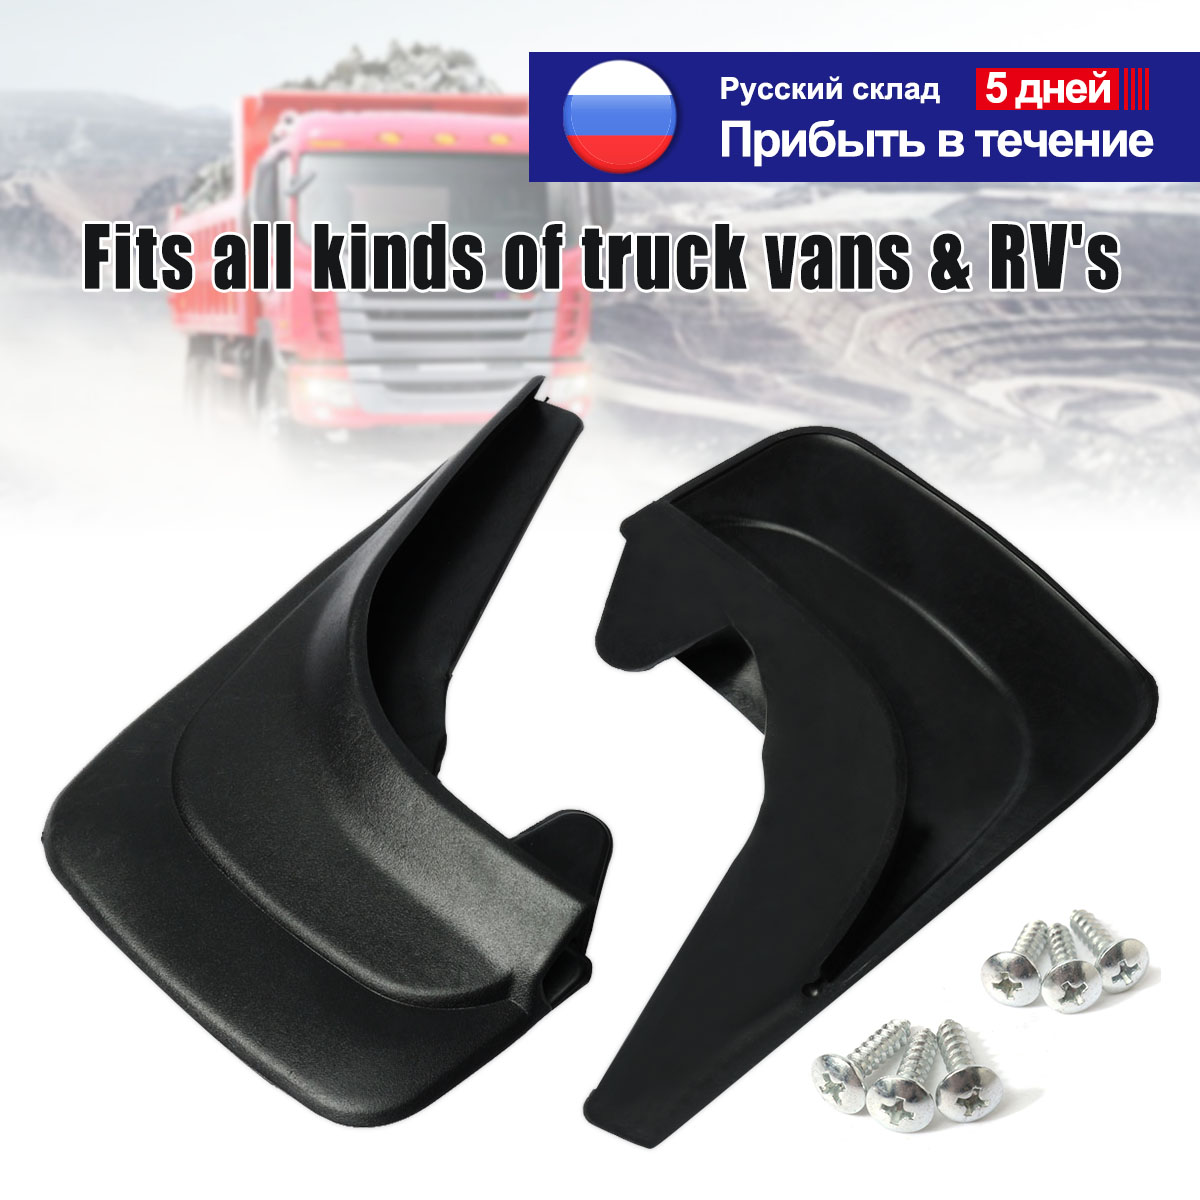 Universal Front Rear Car Truck Van Mud Flap <font><b>Mudflaps</b></font> For Peugeot /FIAT /Citroen /<font><b>VW</b></font> /AUDI image